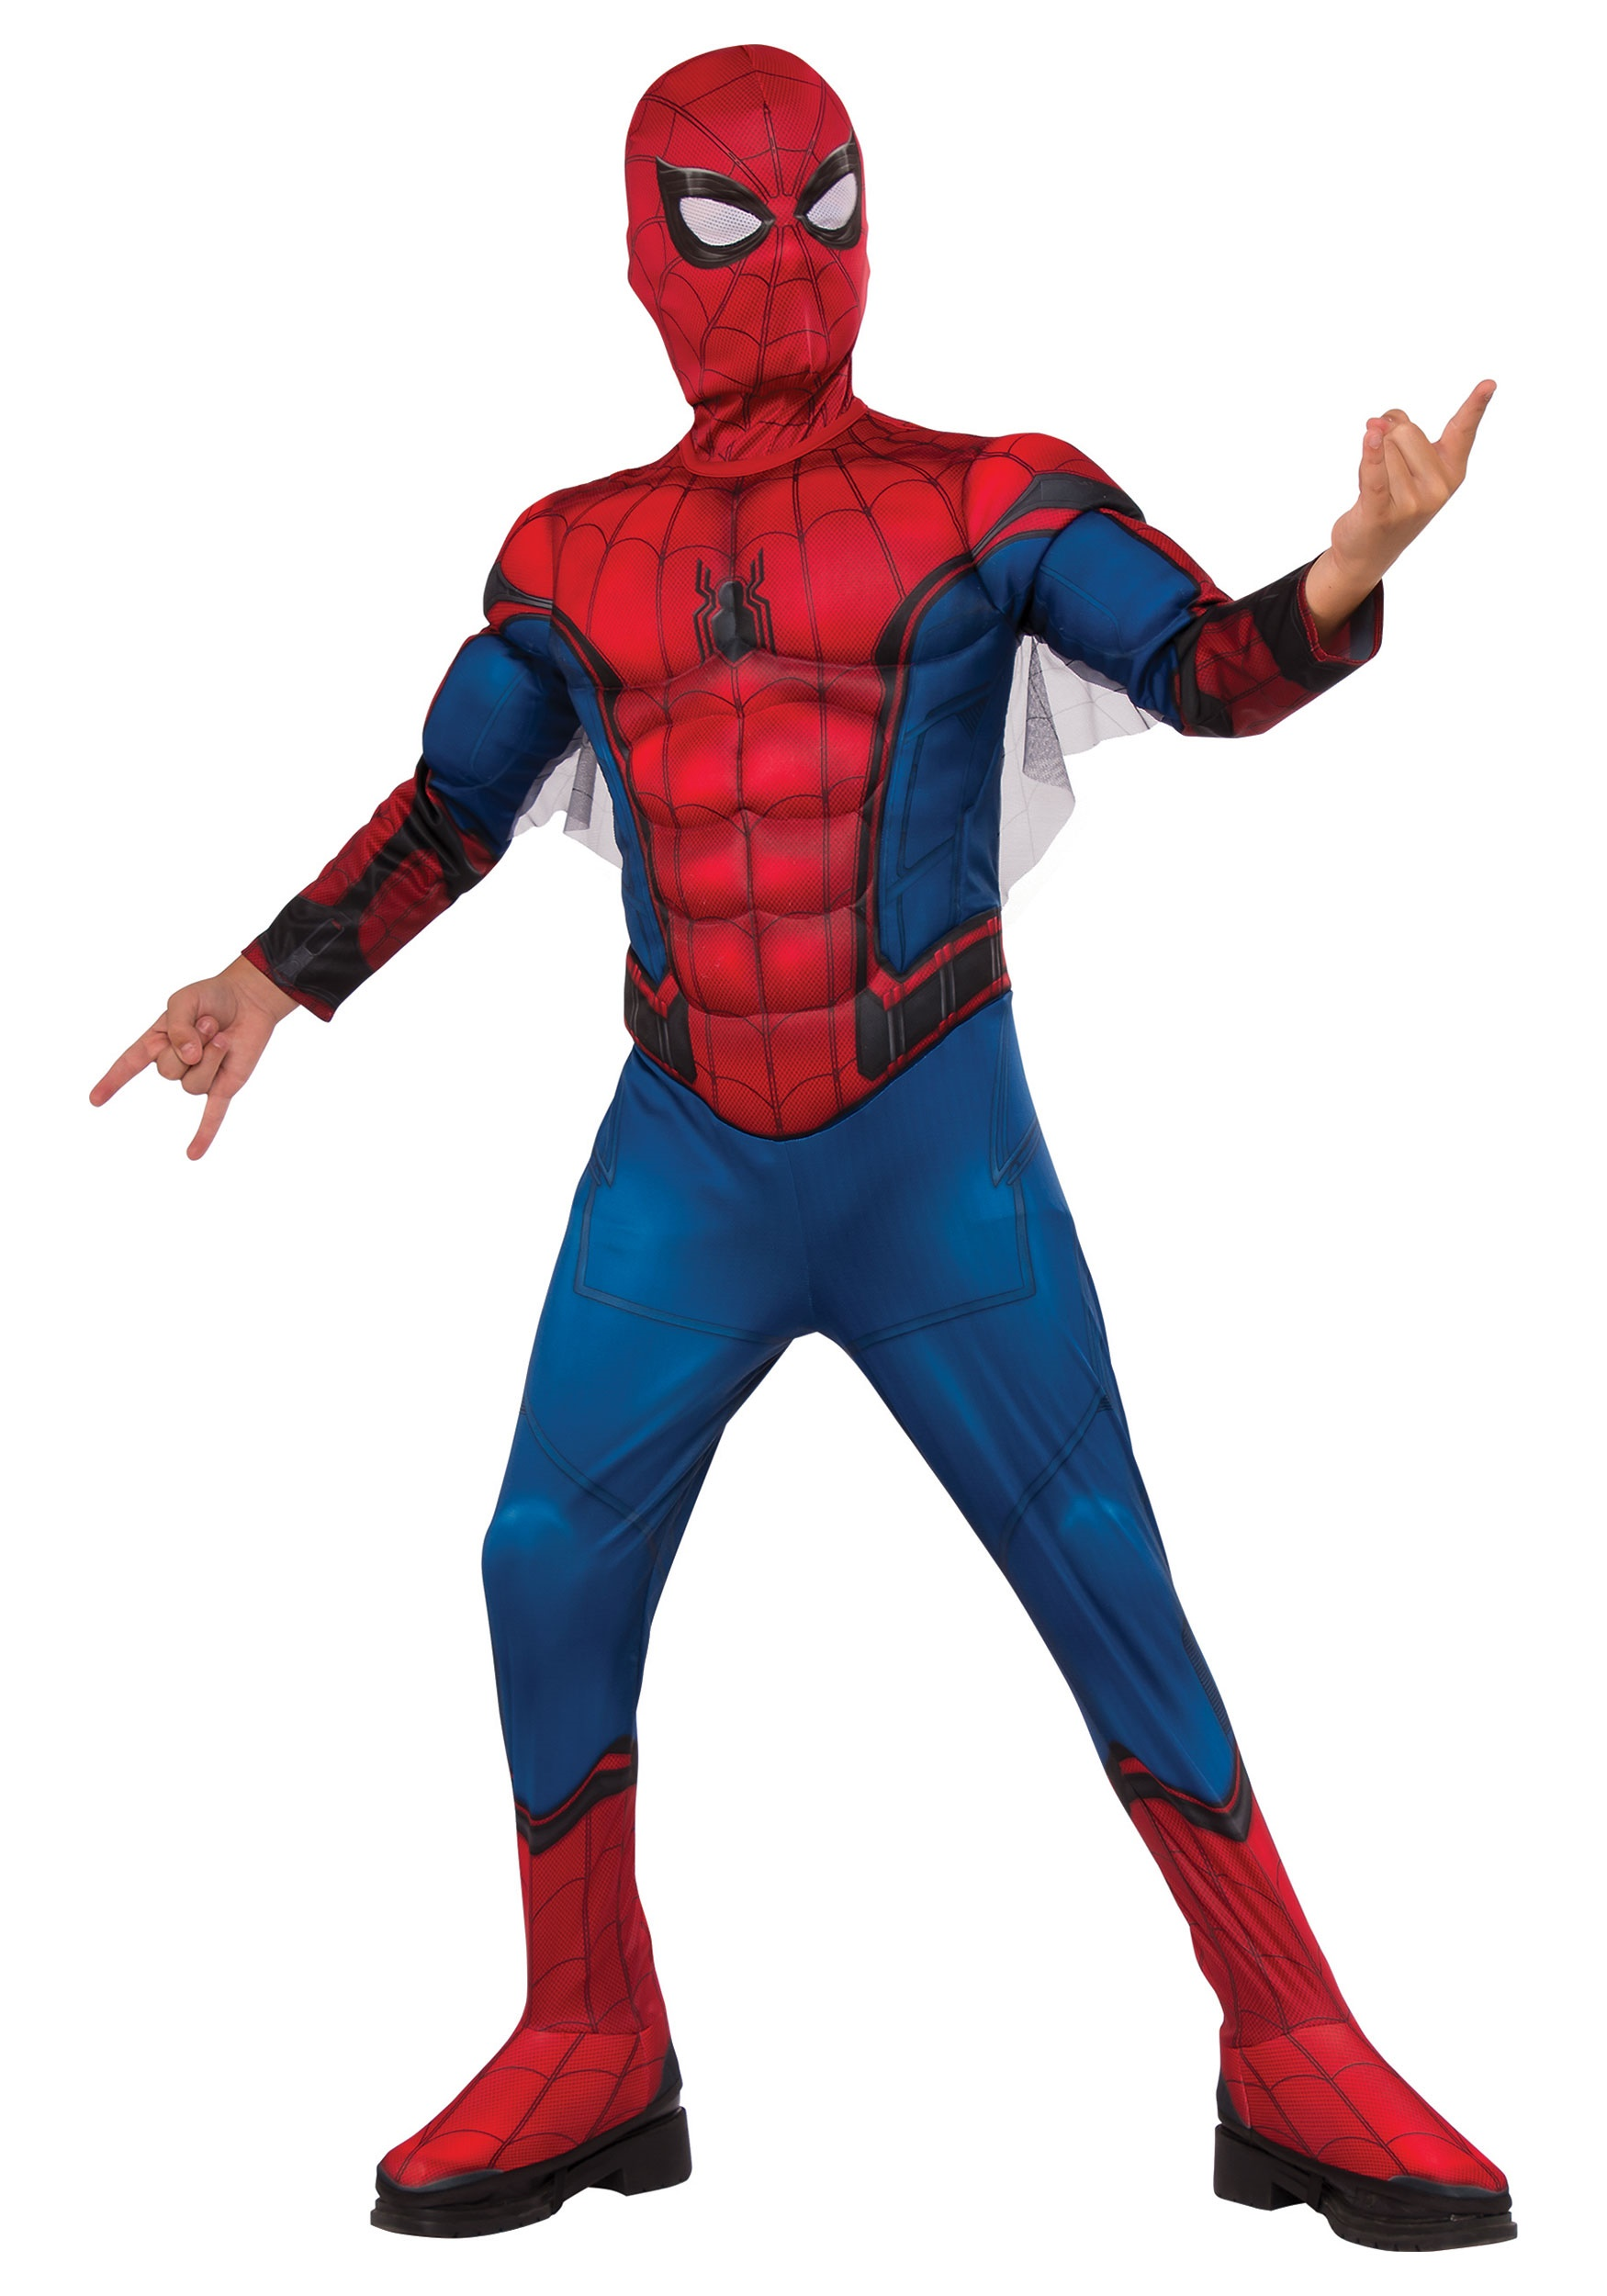 This Halloween, web-swing into action as Marvel Comic's most famous and beloved superhero with Spider-Man Halloween costumes!Toddlers, kids, teens, and adults alike can don Spidey's classic red-and-blue duds and be ready to roll, leap, climb walls, or go web-slinging across town.